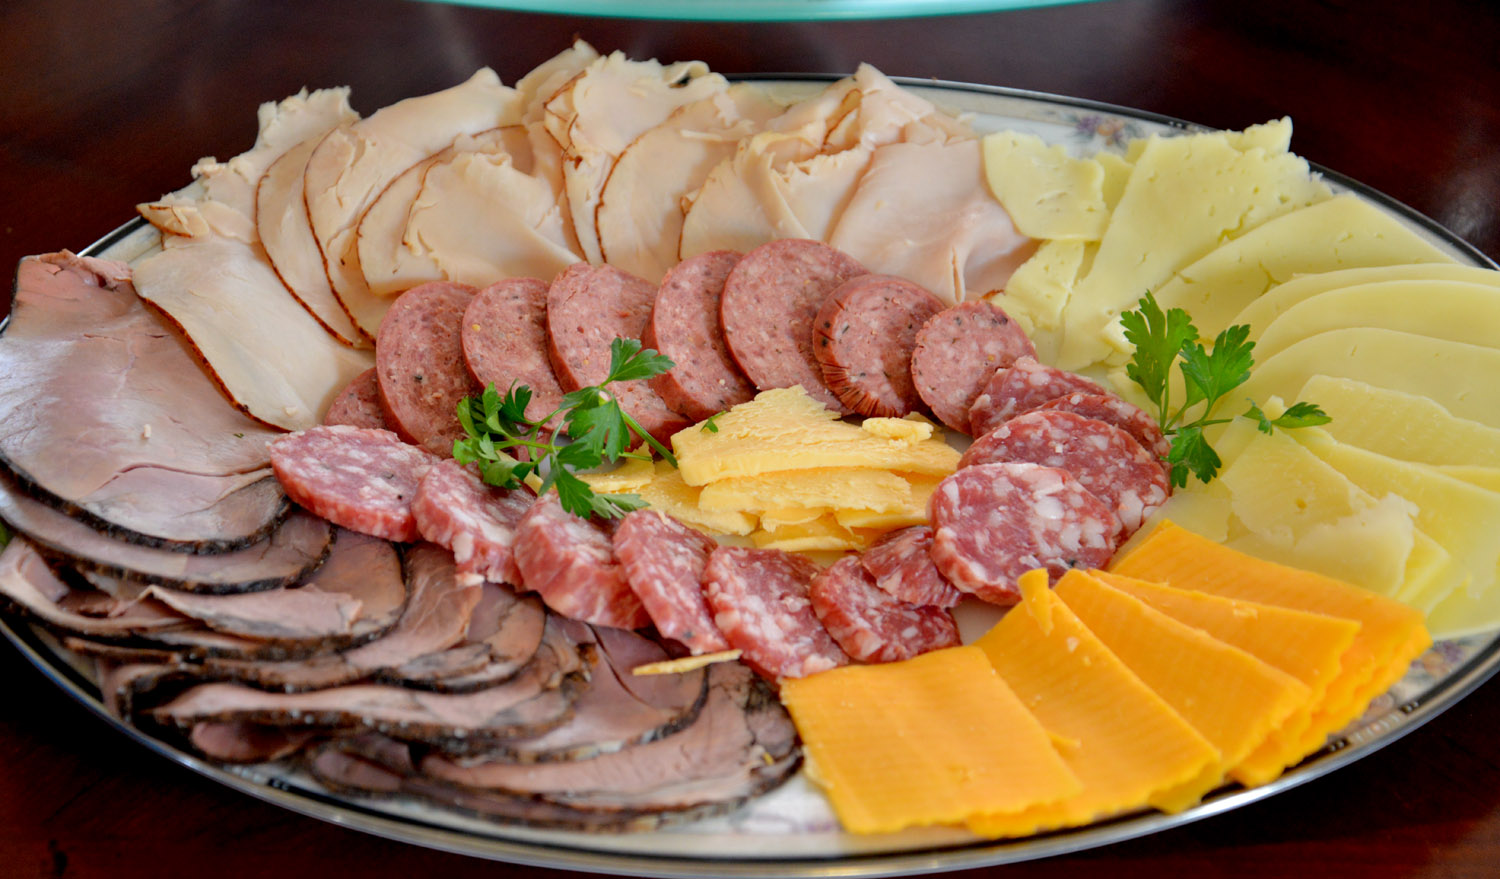 meat and cheese tray costco